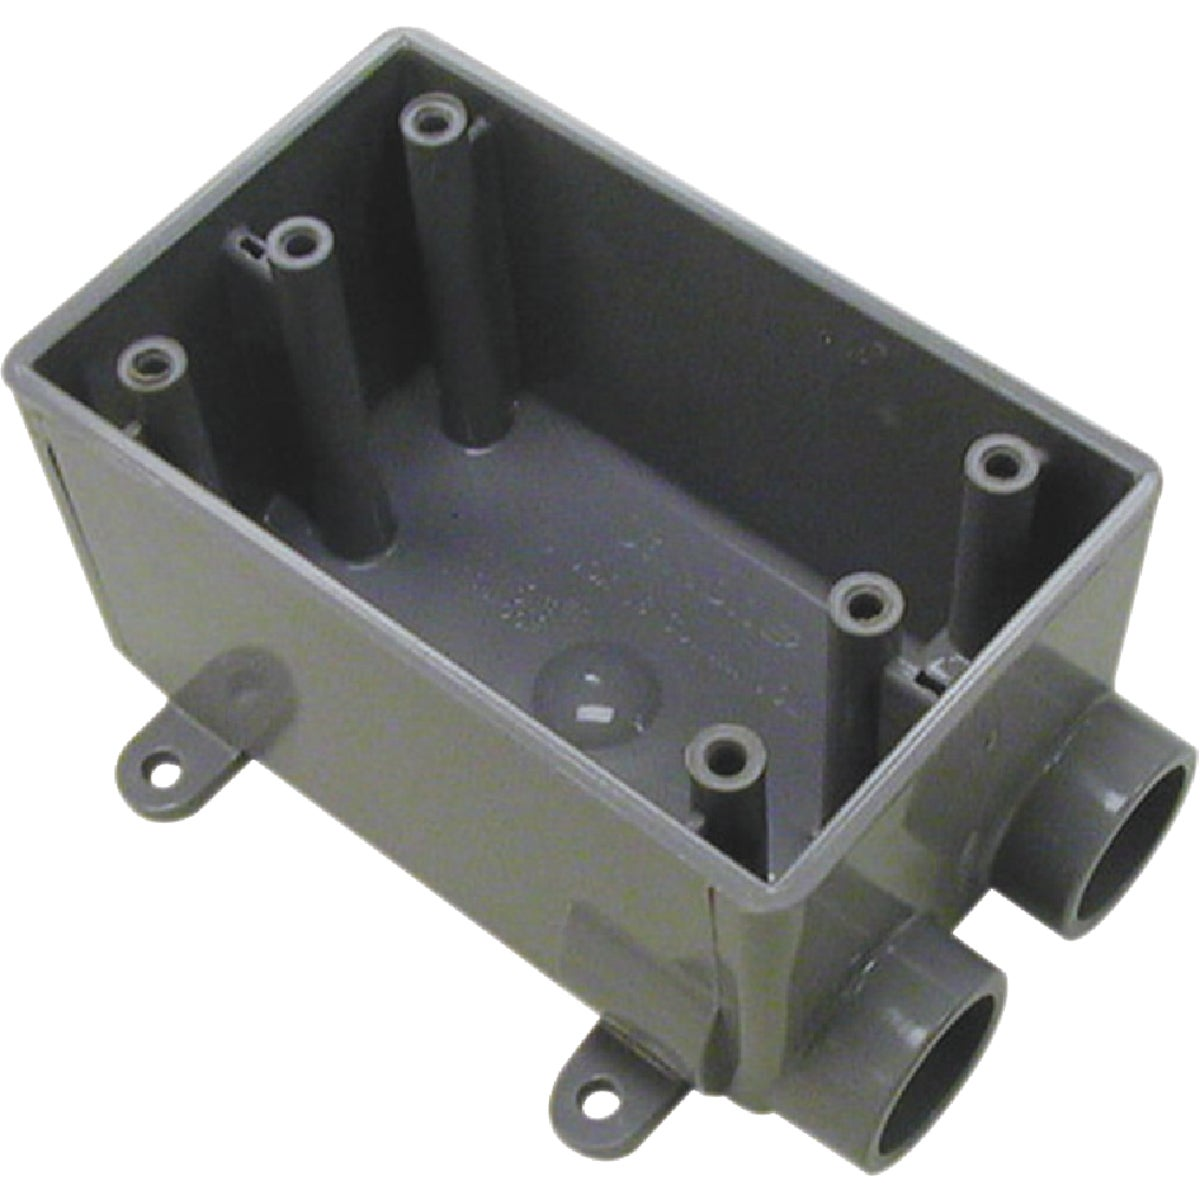 "3/4"" FSS OUTLET BOX - E982EFNCTN by Thomas & Betts"